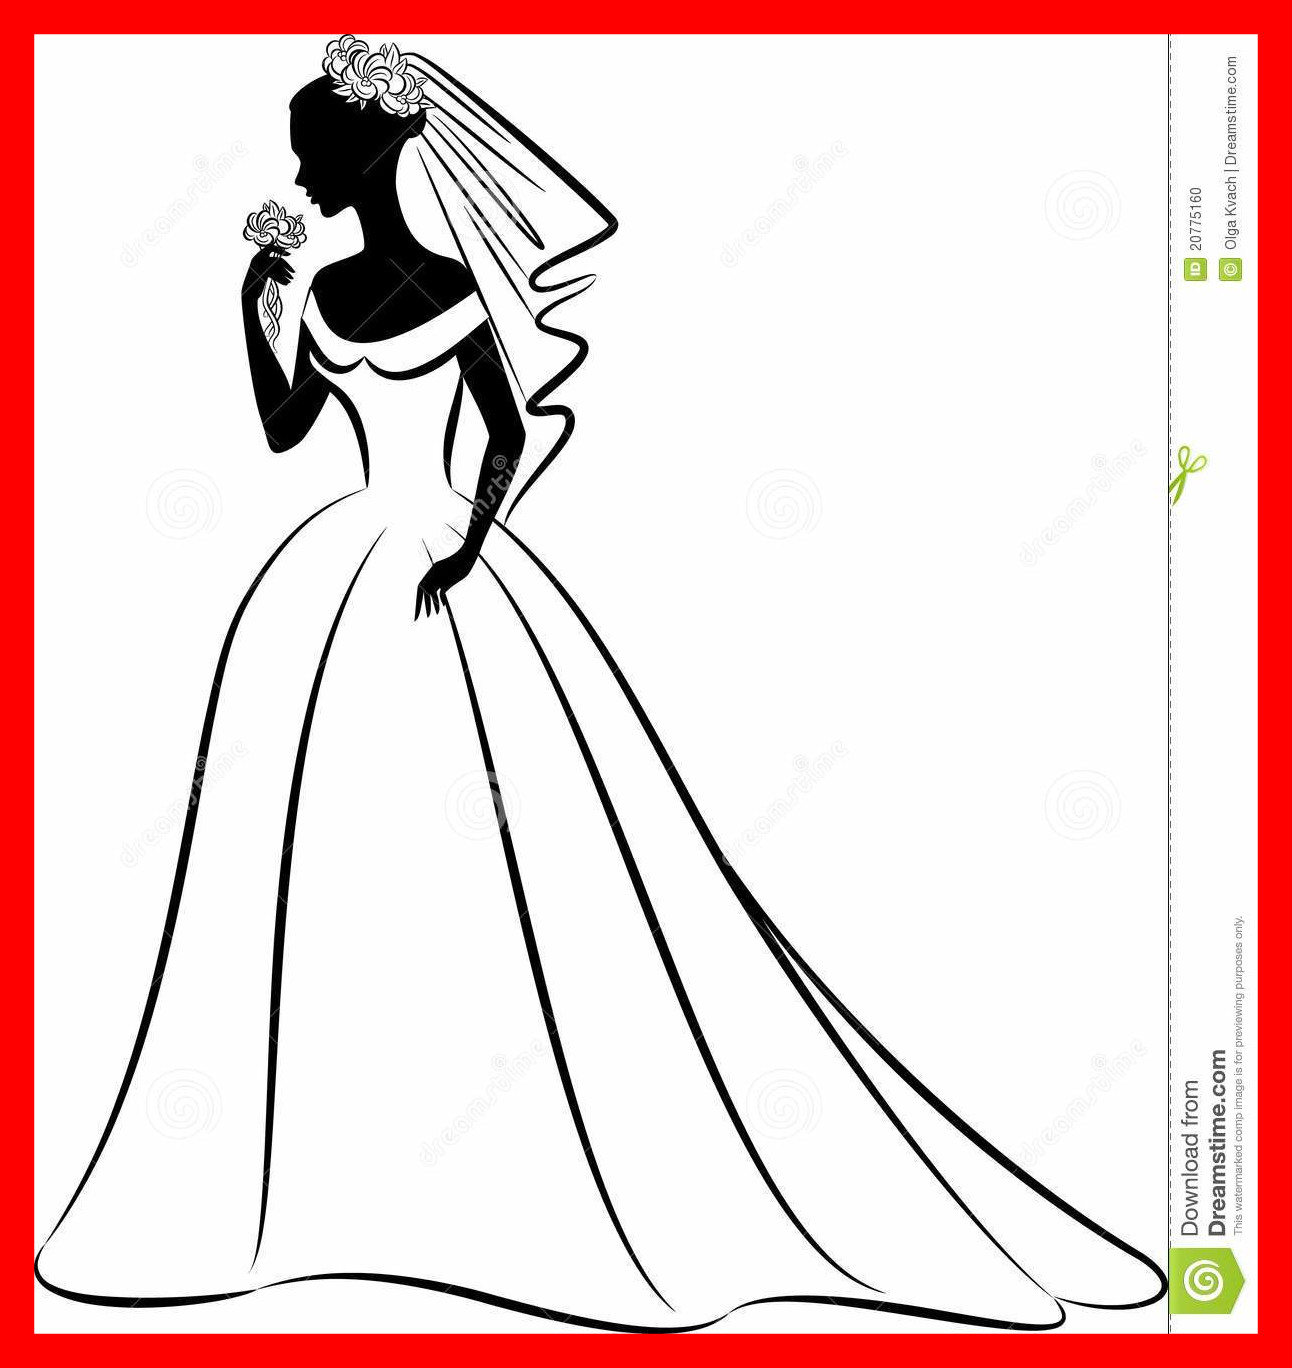 Bride clipart evening gown. Awesome silhouette of dress